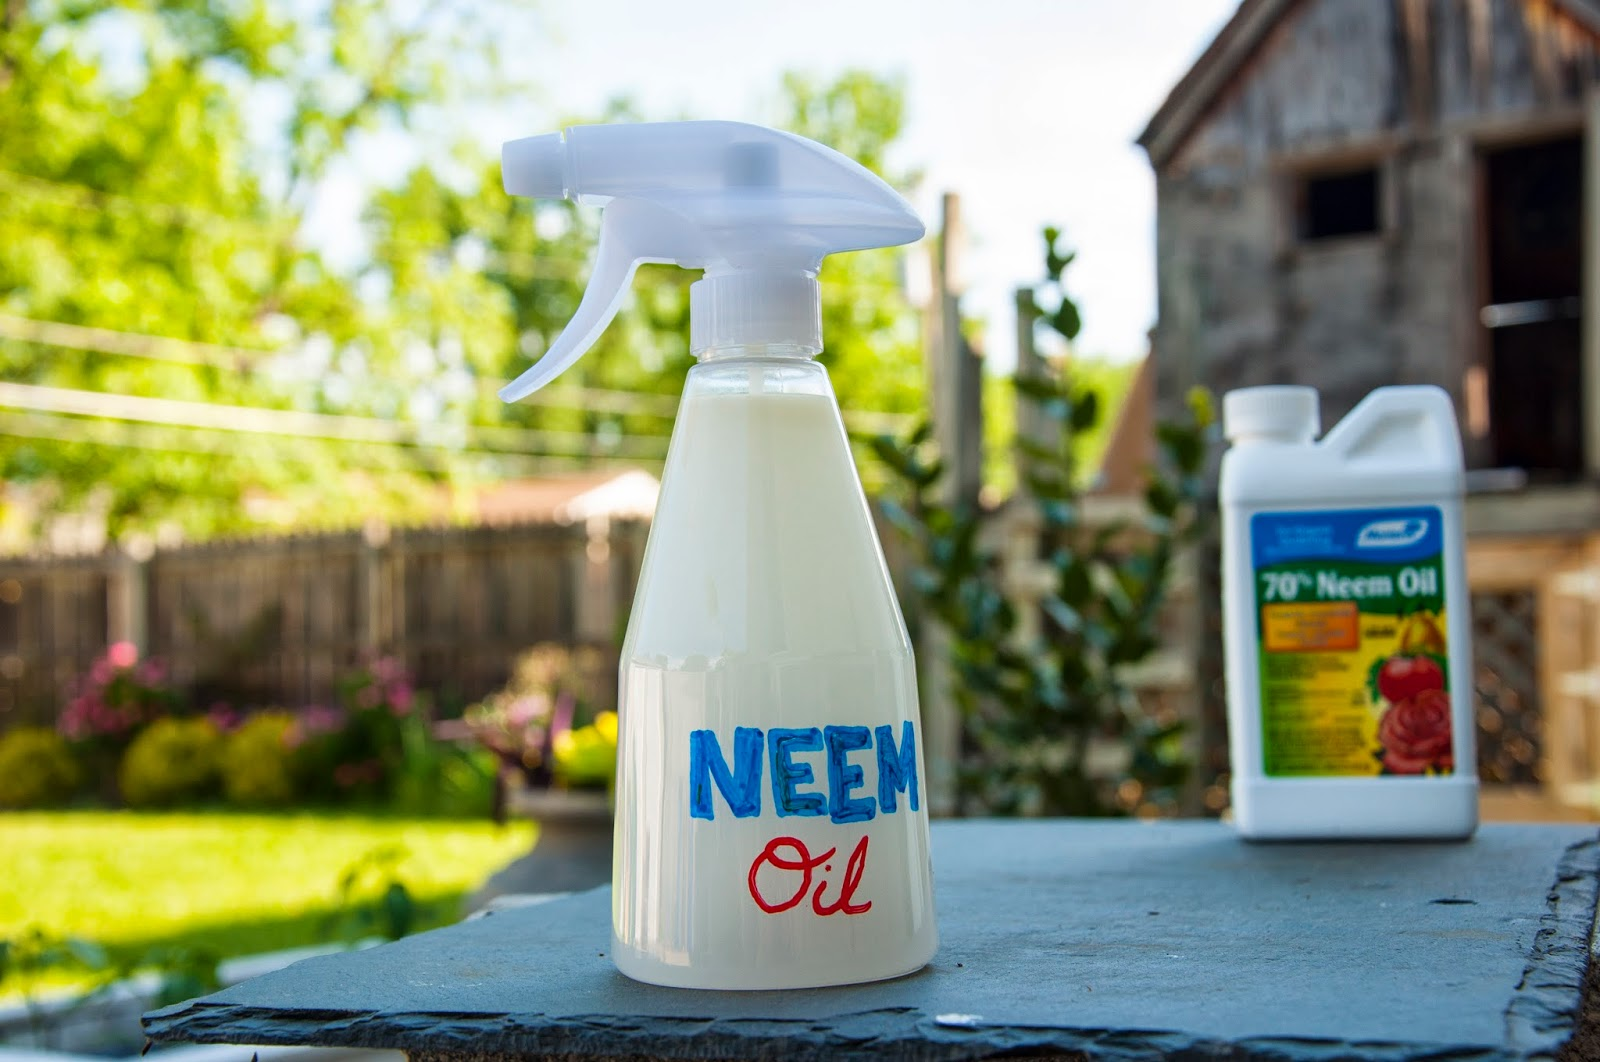 The Green Gardener Neem The Organic Insecticide